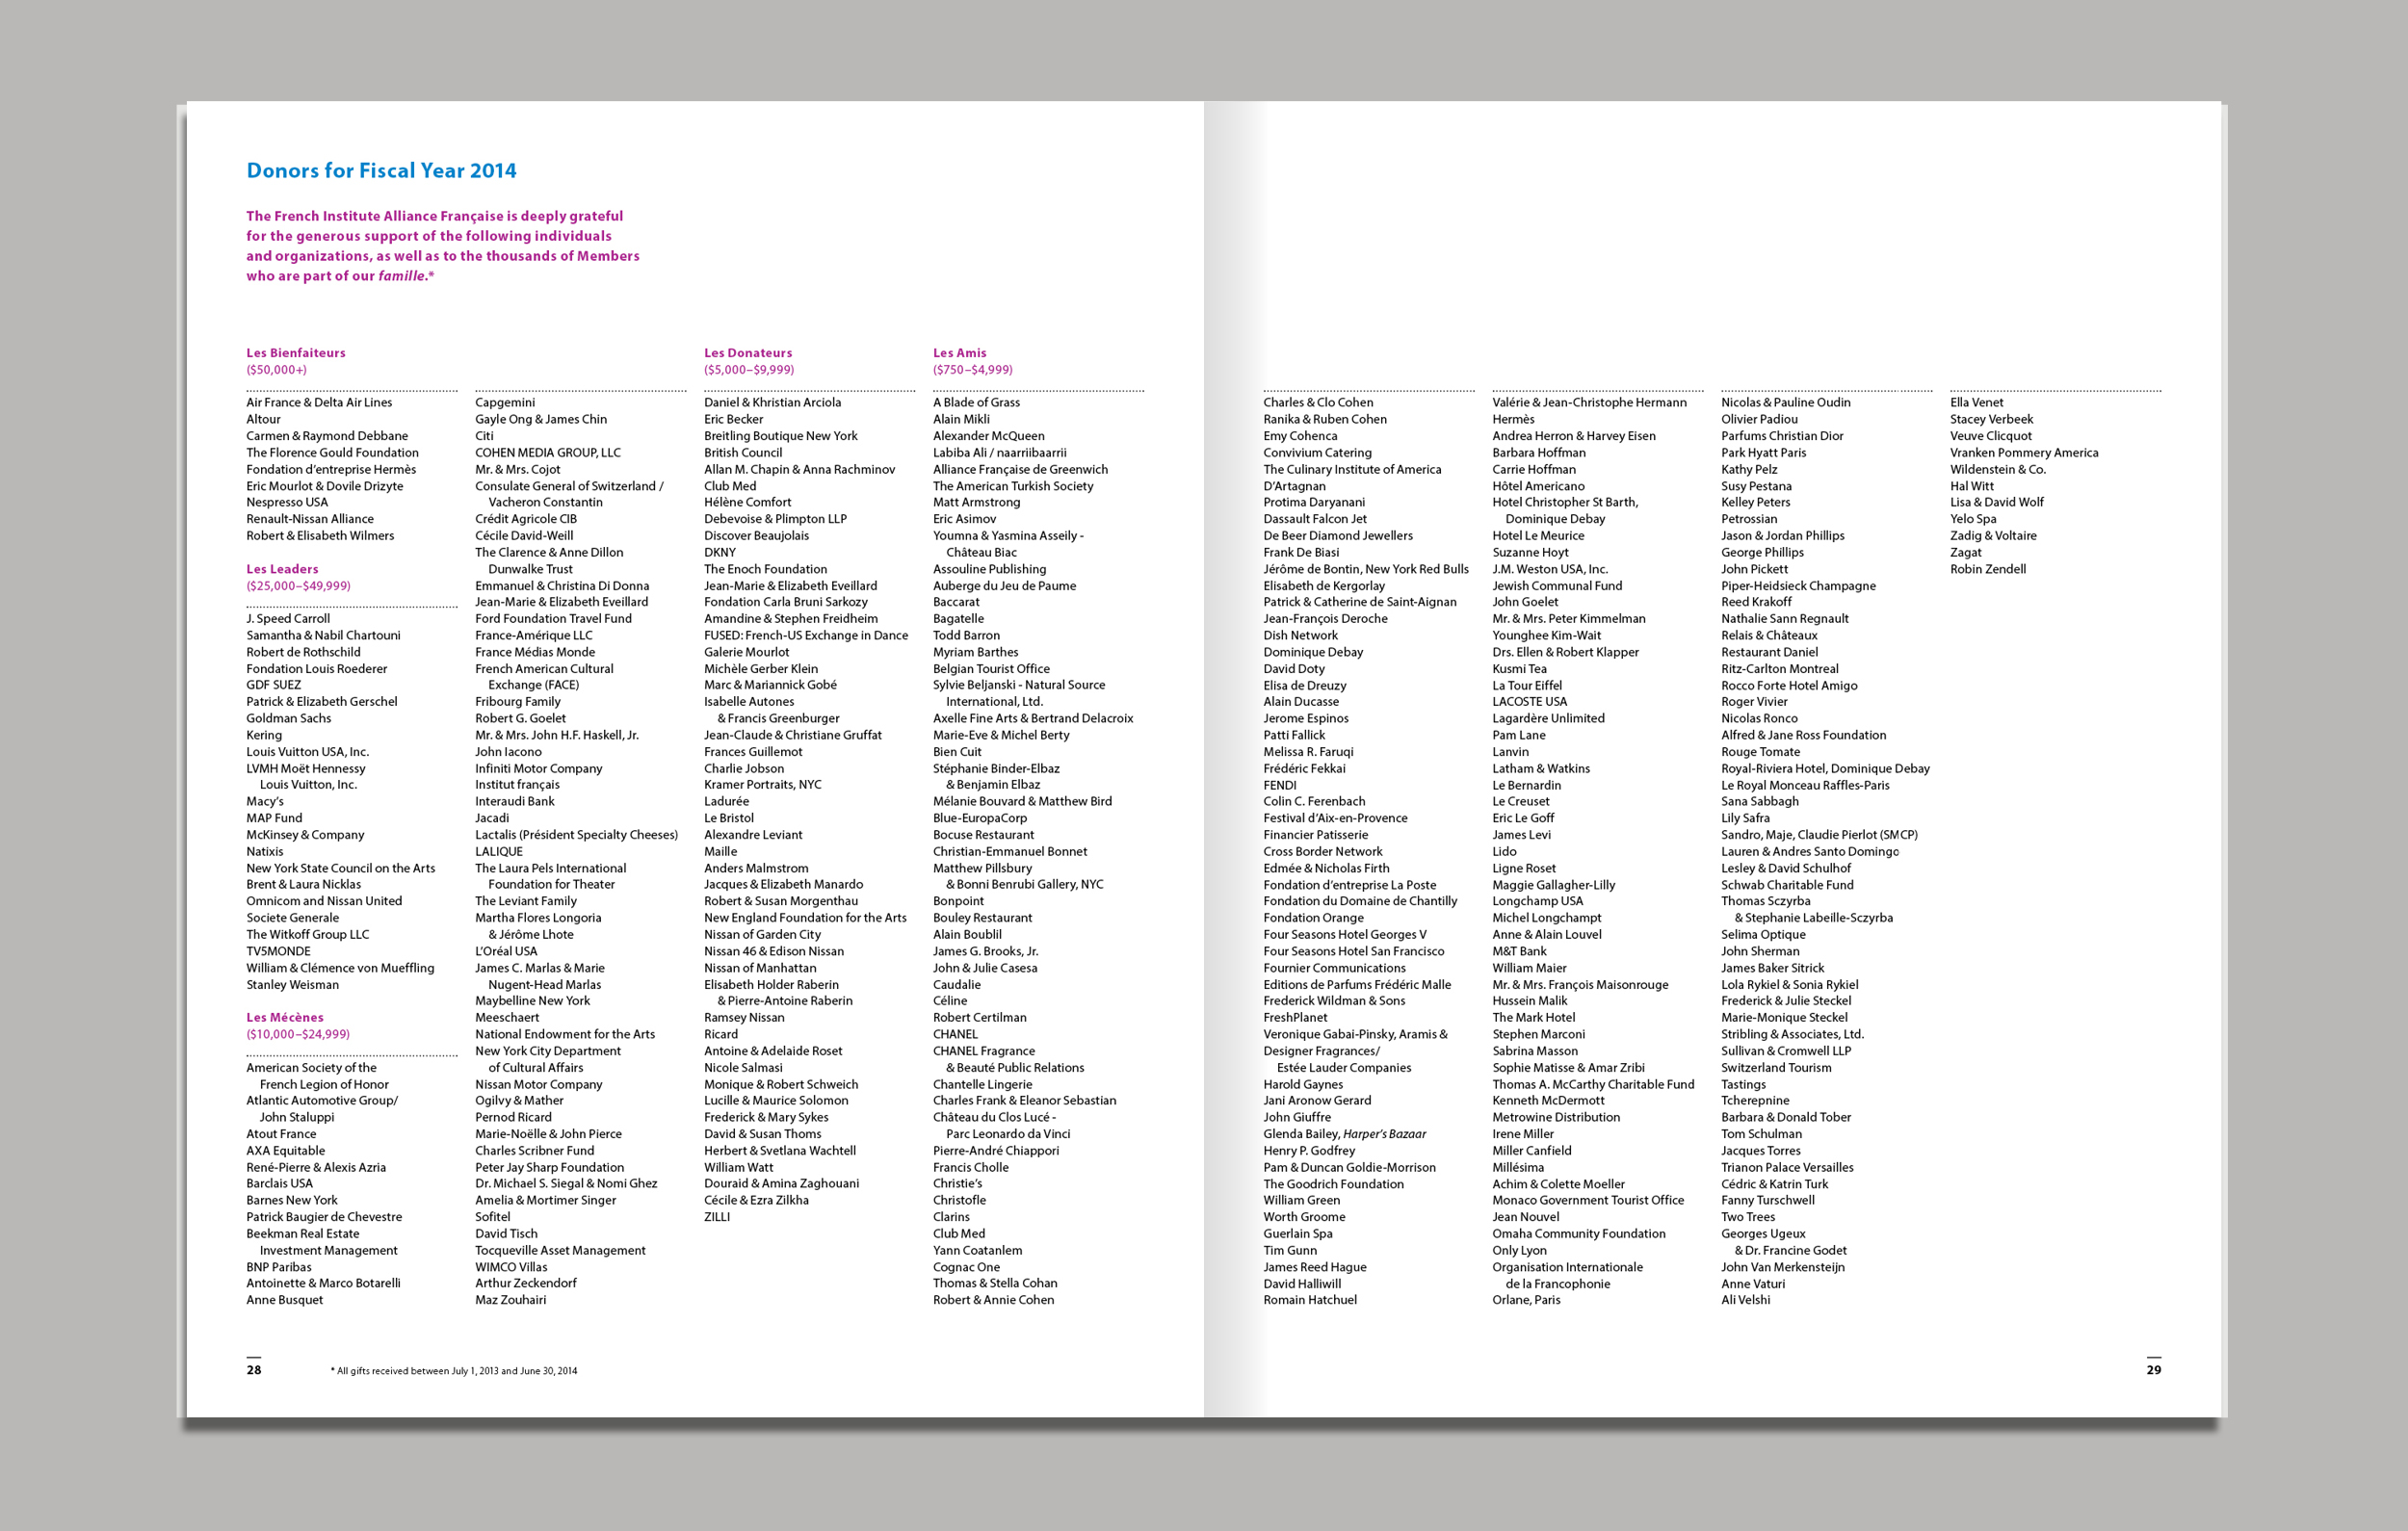 FIAF Annual Report Marion Bizet16.jpg